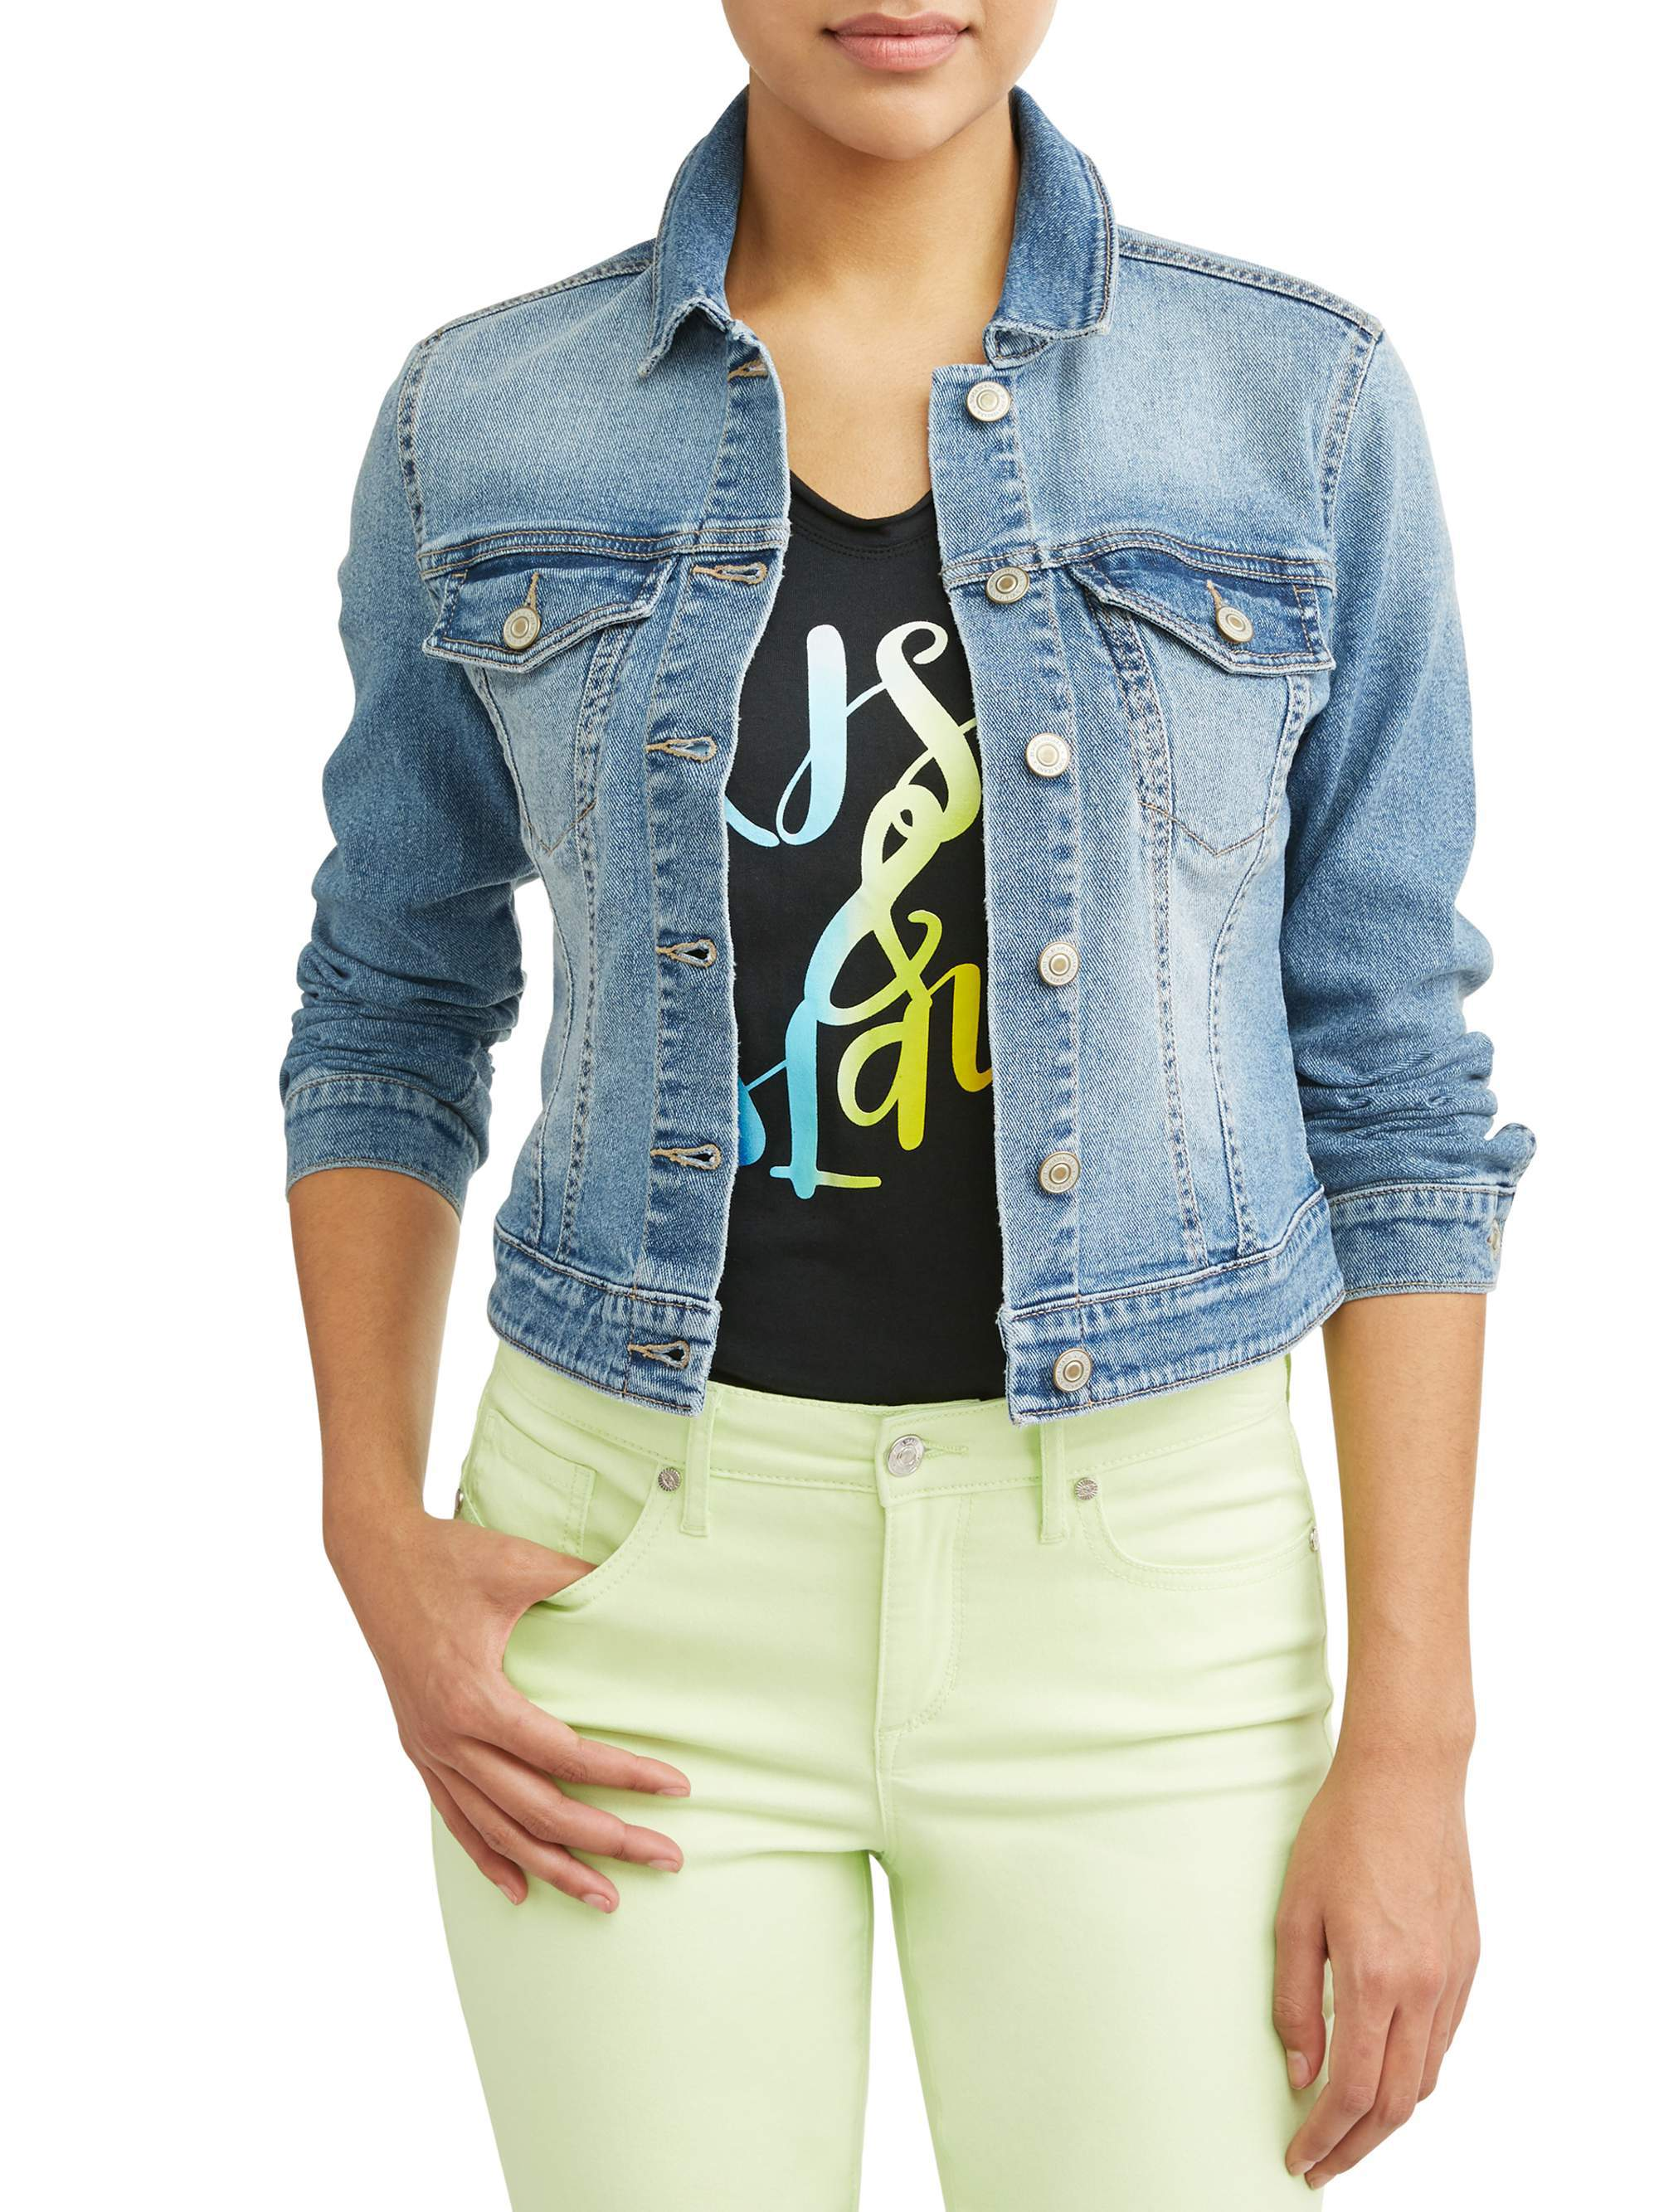 fast delivery hot-selling authentic 2019 discount sale Marianella Soft Stretch Washed Denim Jacket Women's (Light Wash)